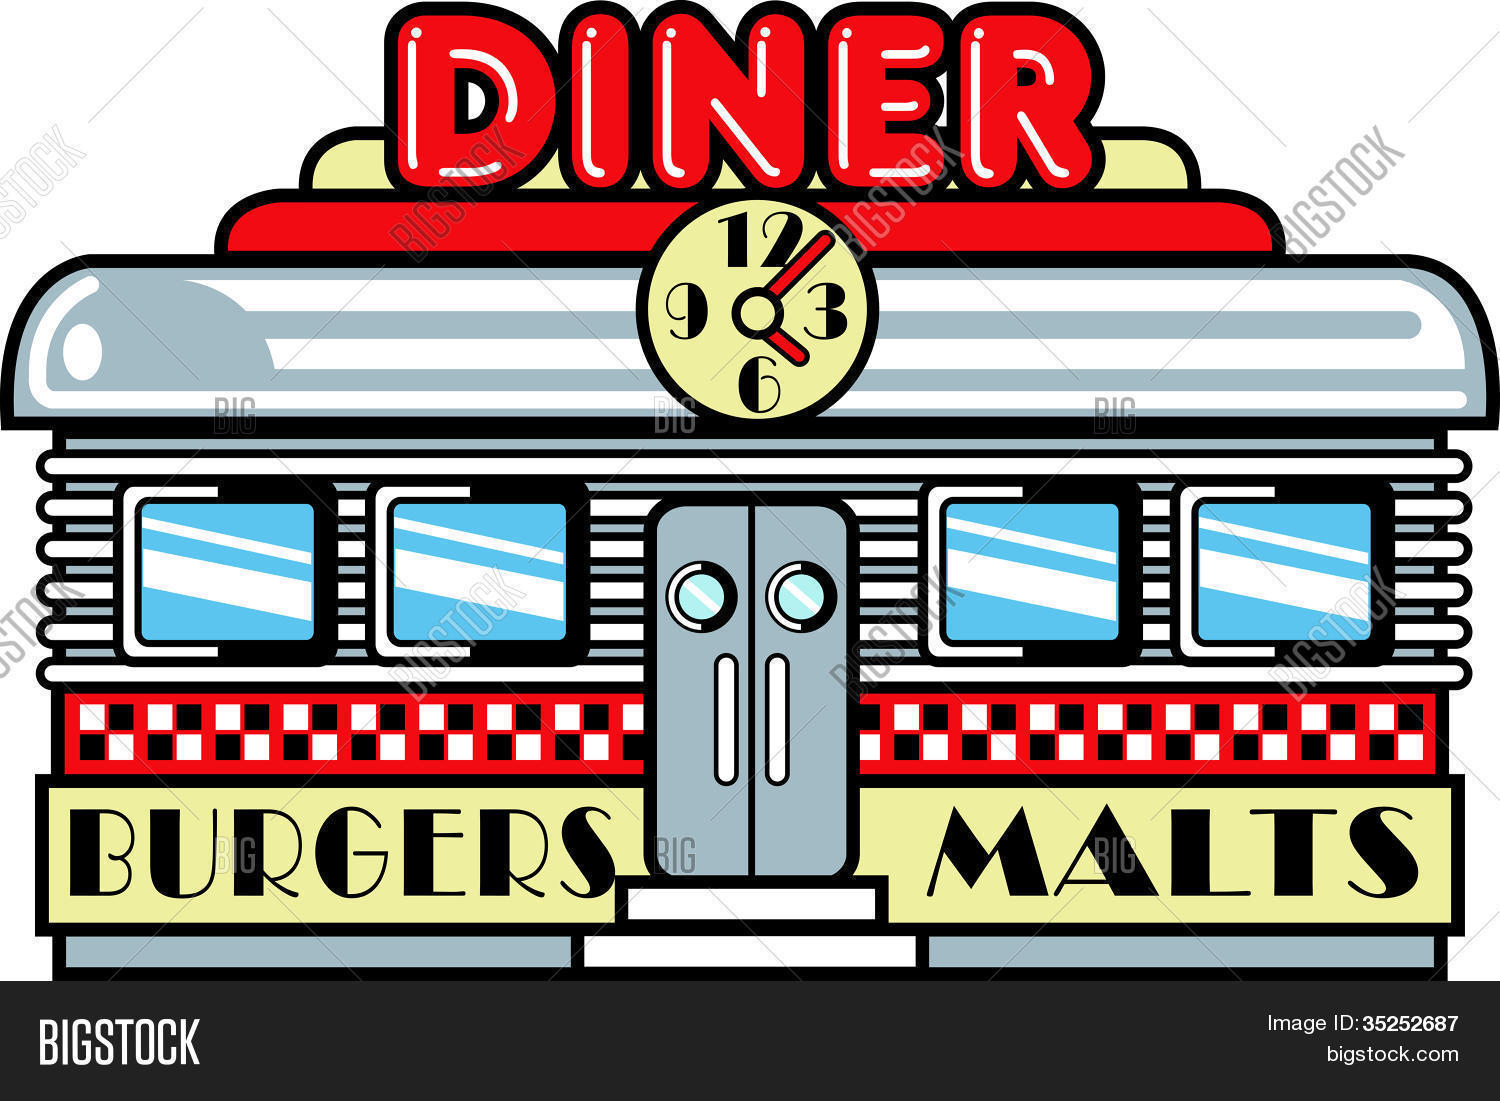 Diner clipart. Pencil and in color